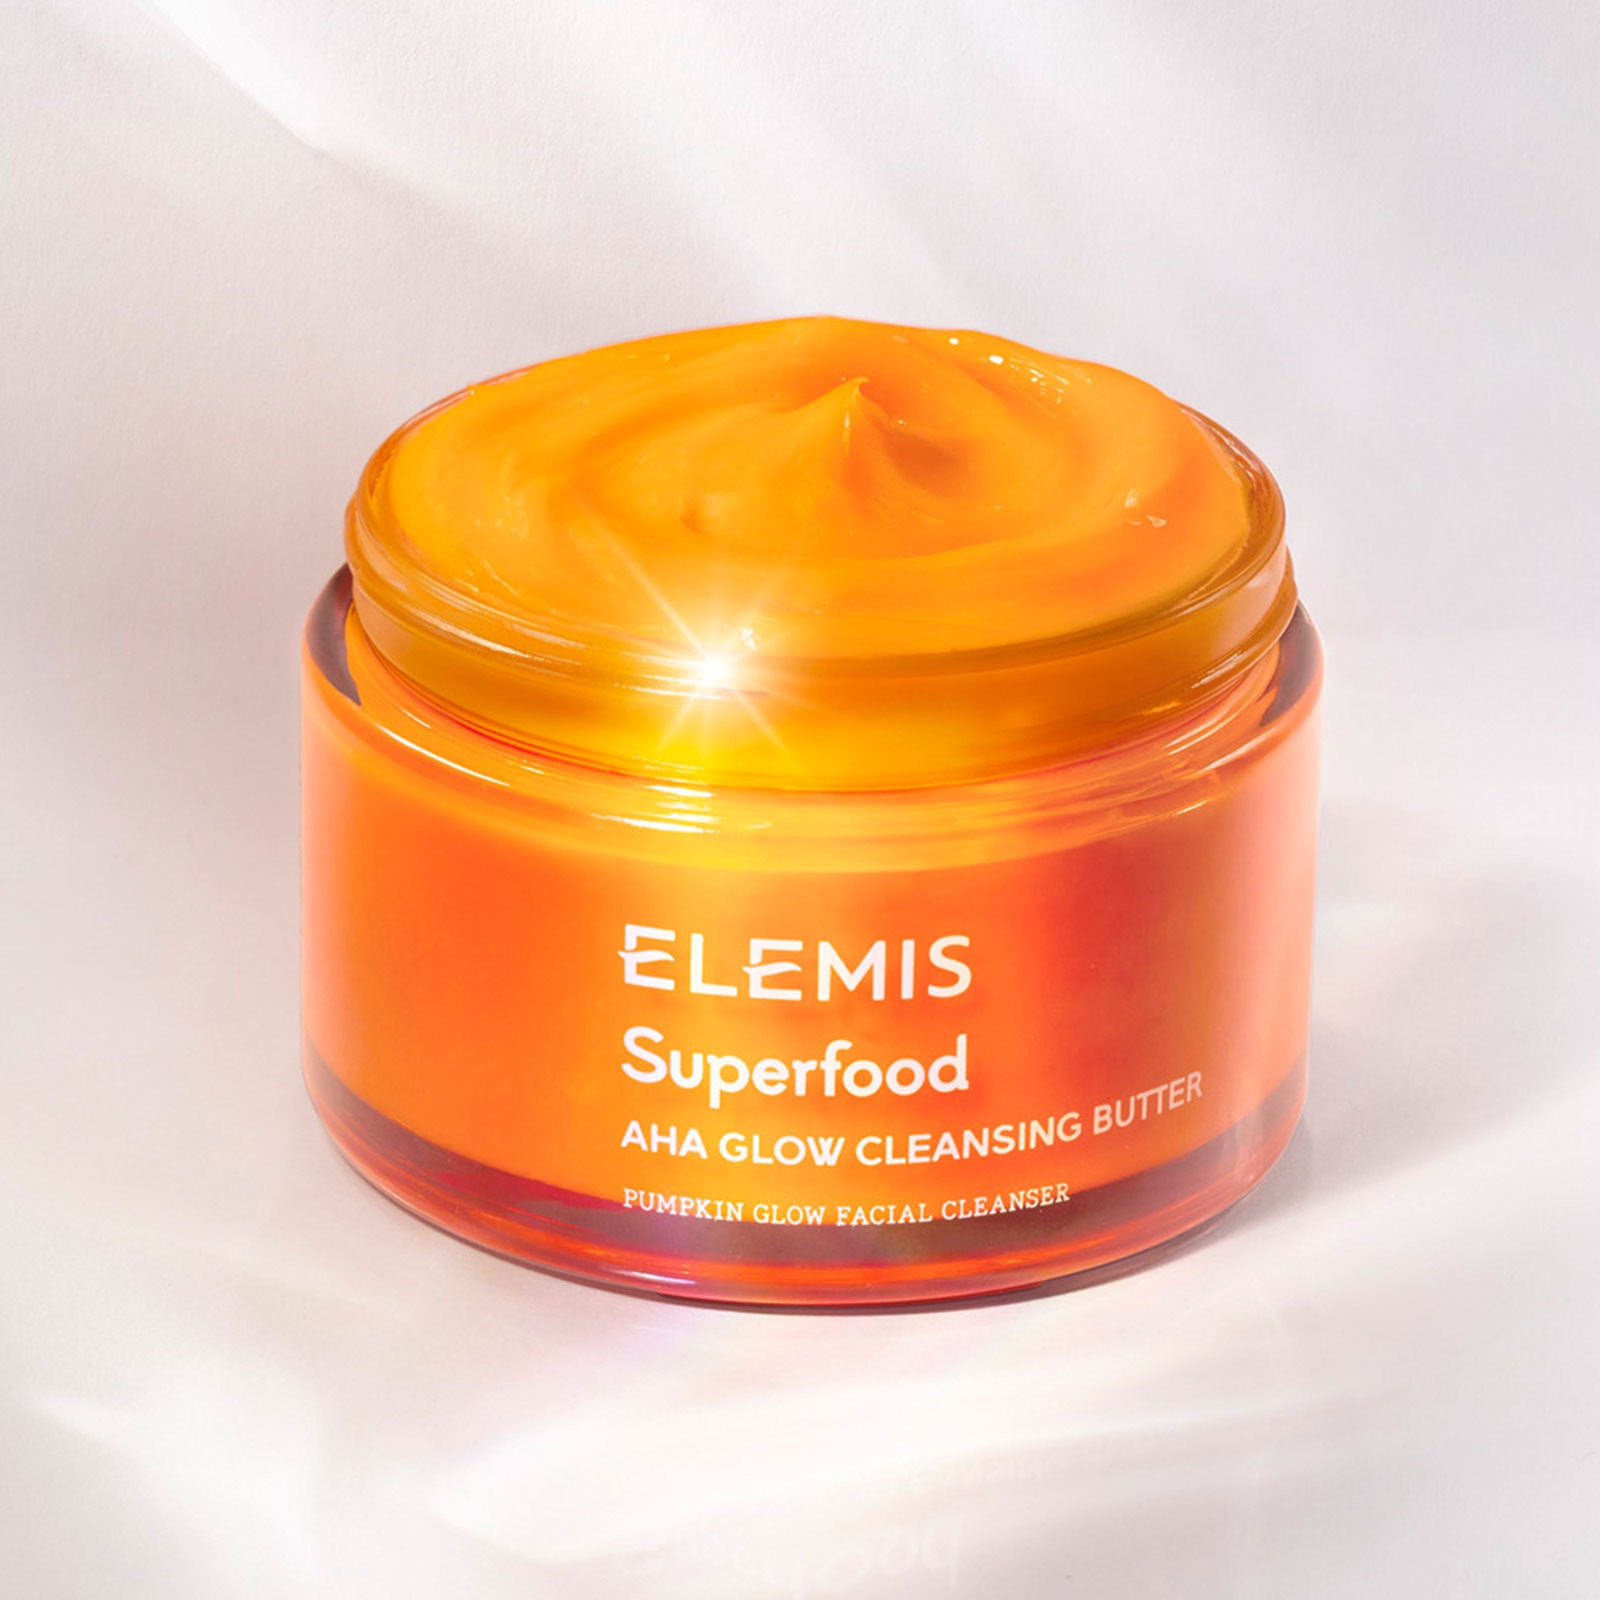 ELEMIS Superfood AHA Glow Cleansing Butter 90g